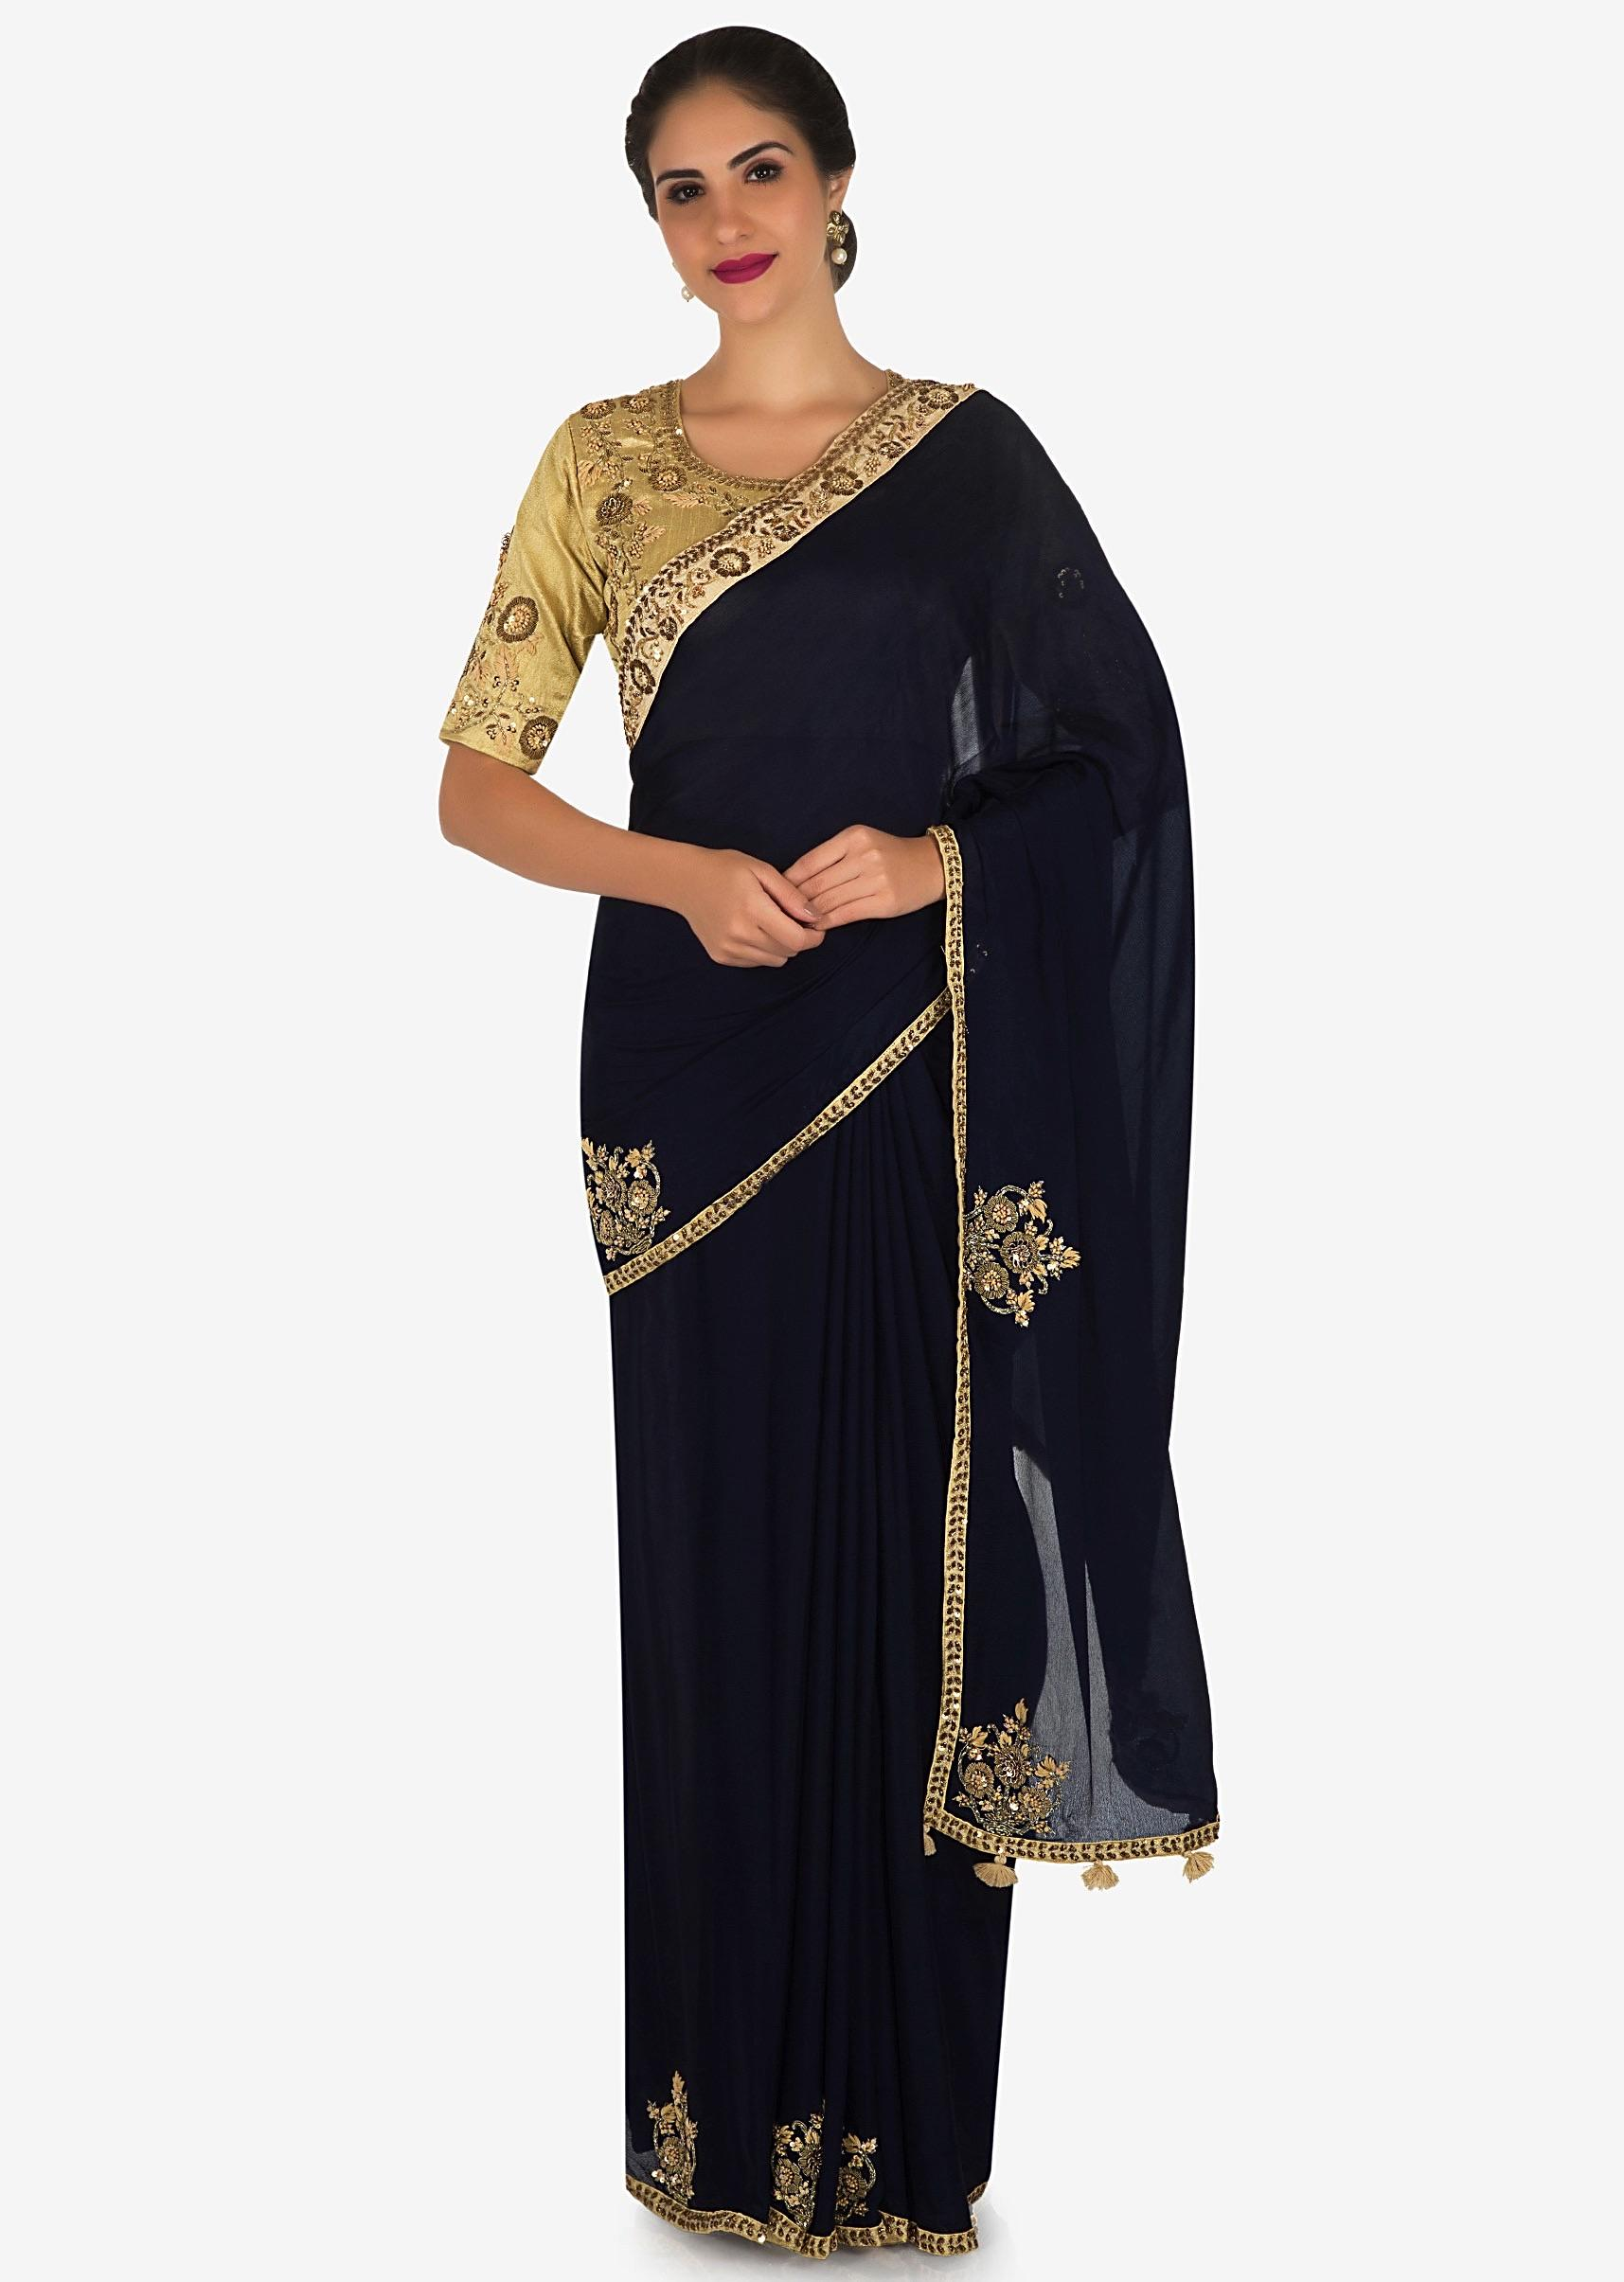 879d6a616b9eaa Navy blue saree in satin silk with a beige blouse embroidered with zardosi  and sequin work only on KalkiMore Detail